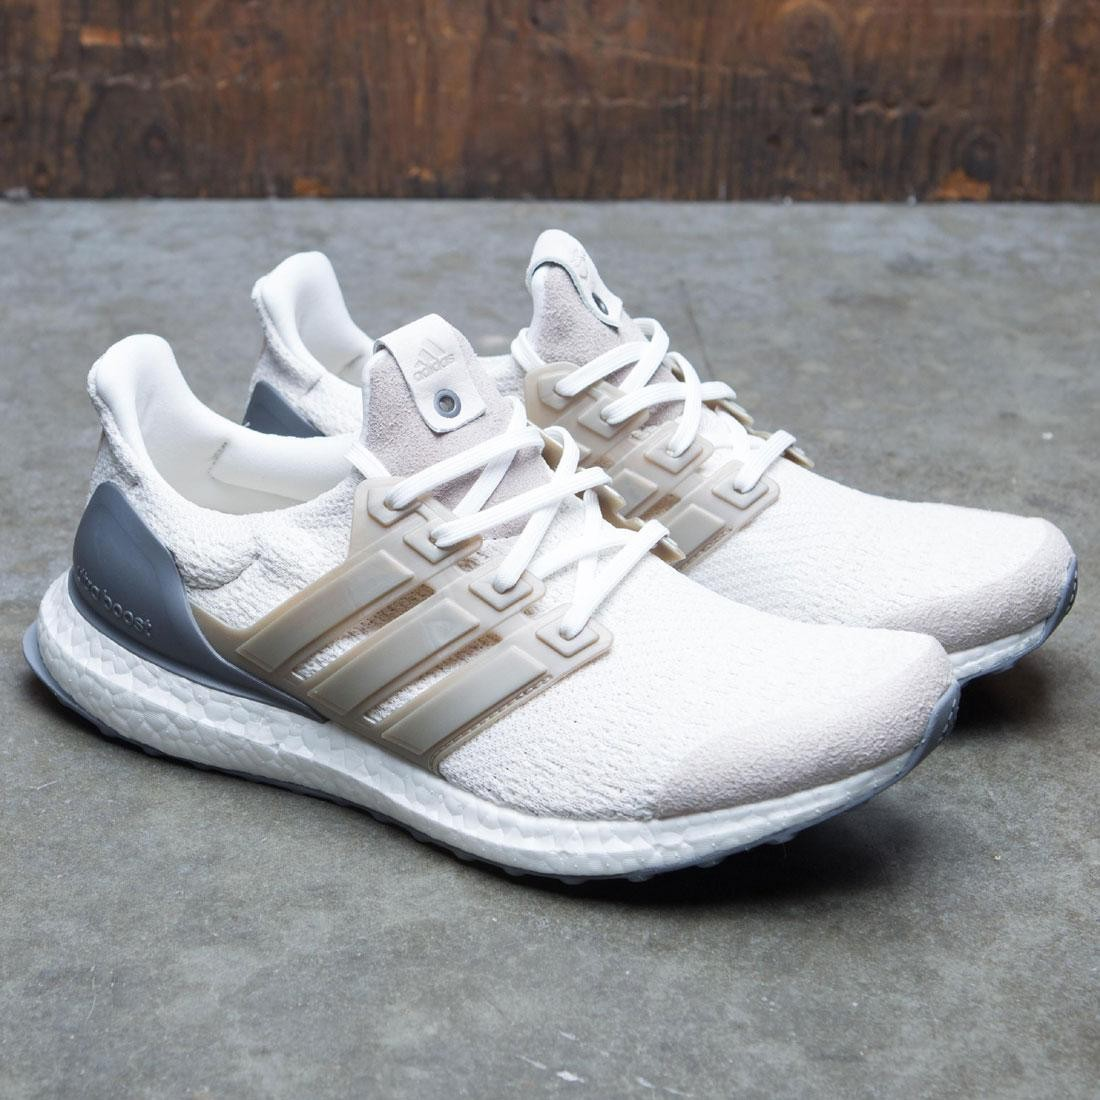 Adidas Consortium Men UltraBOOST Lux (white   vintage white   chocolate  brown) ac4f0ced7340